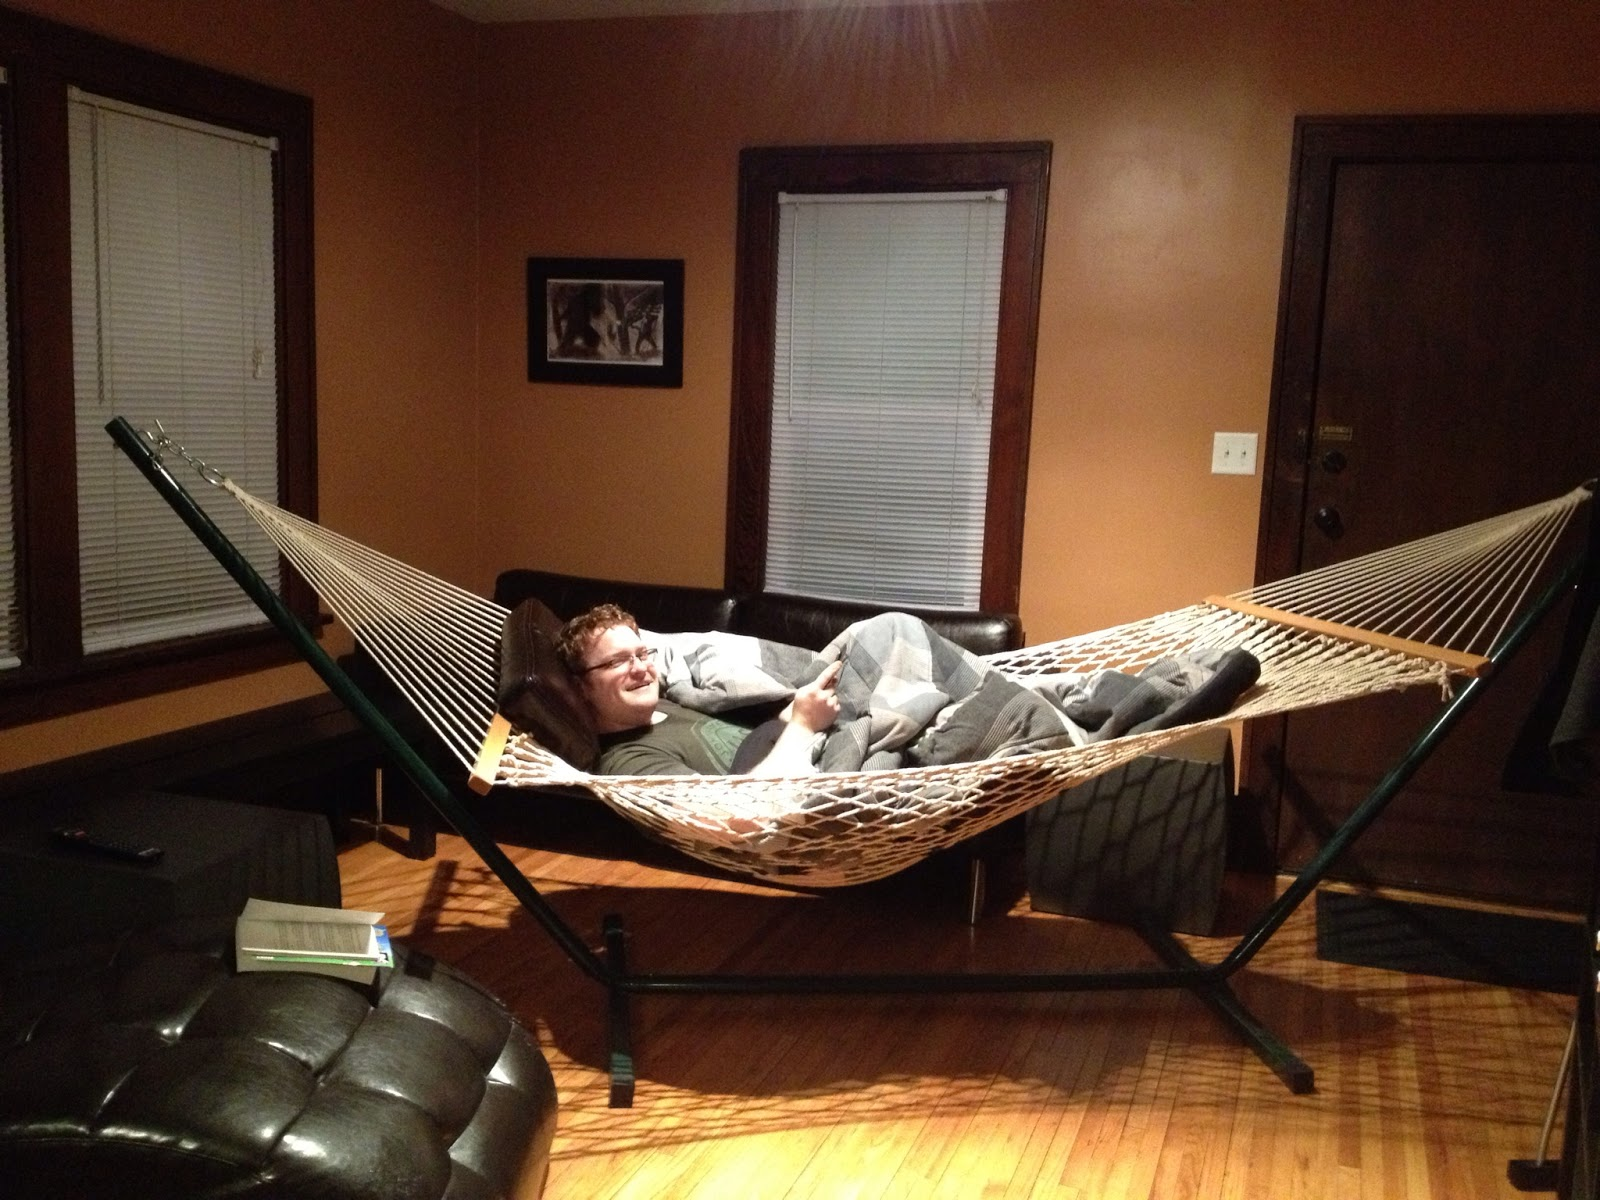 day 27: hammock in the living room